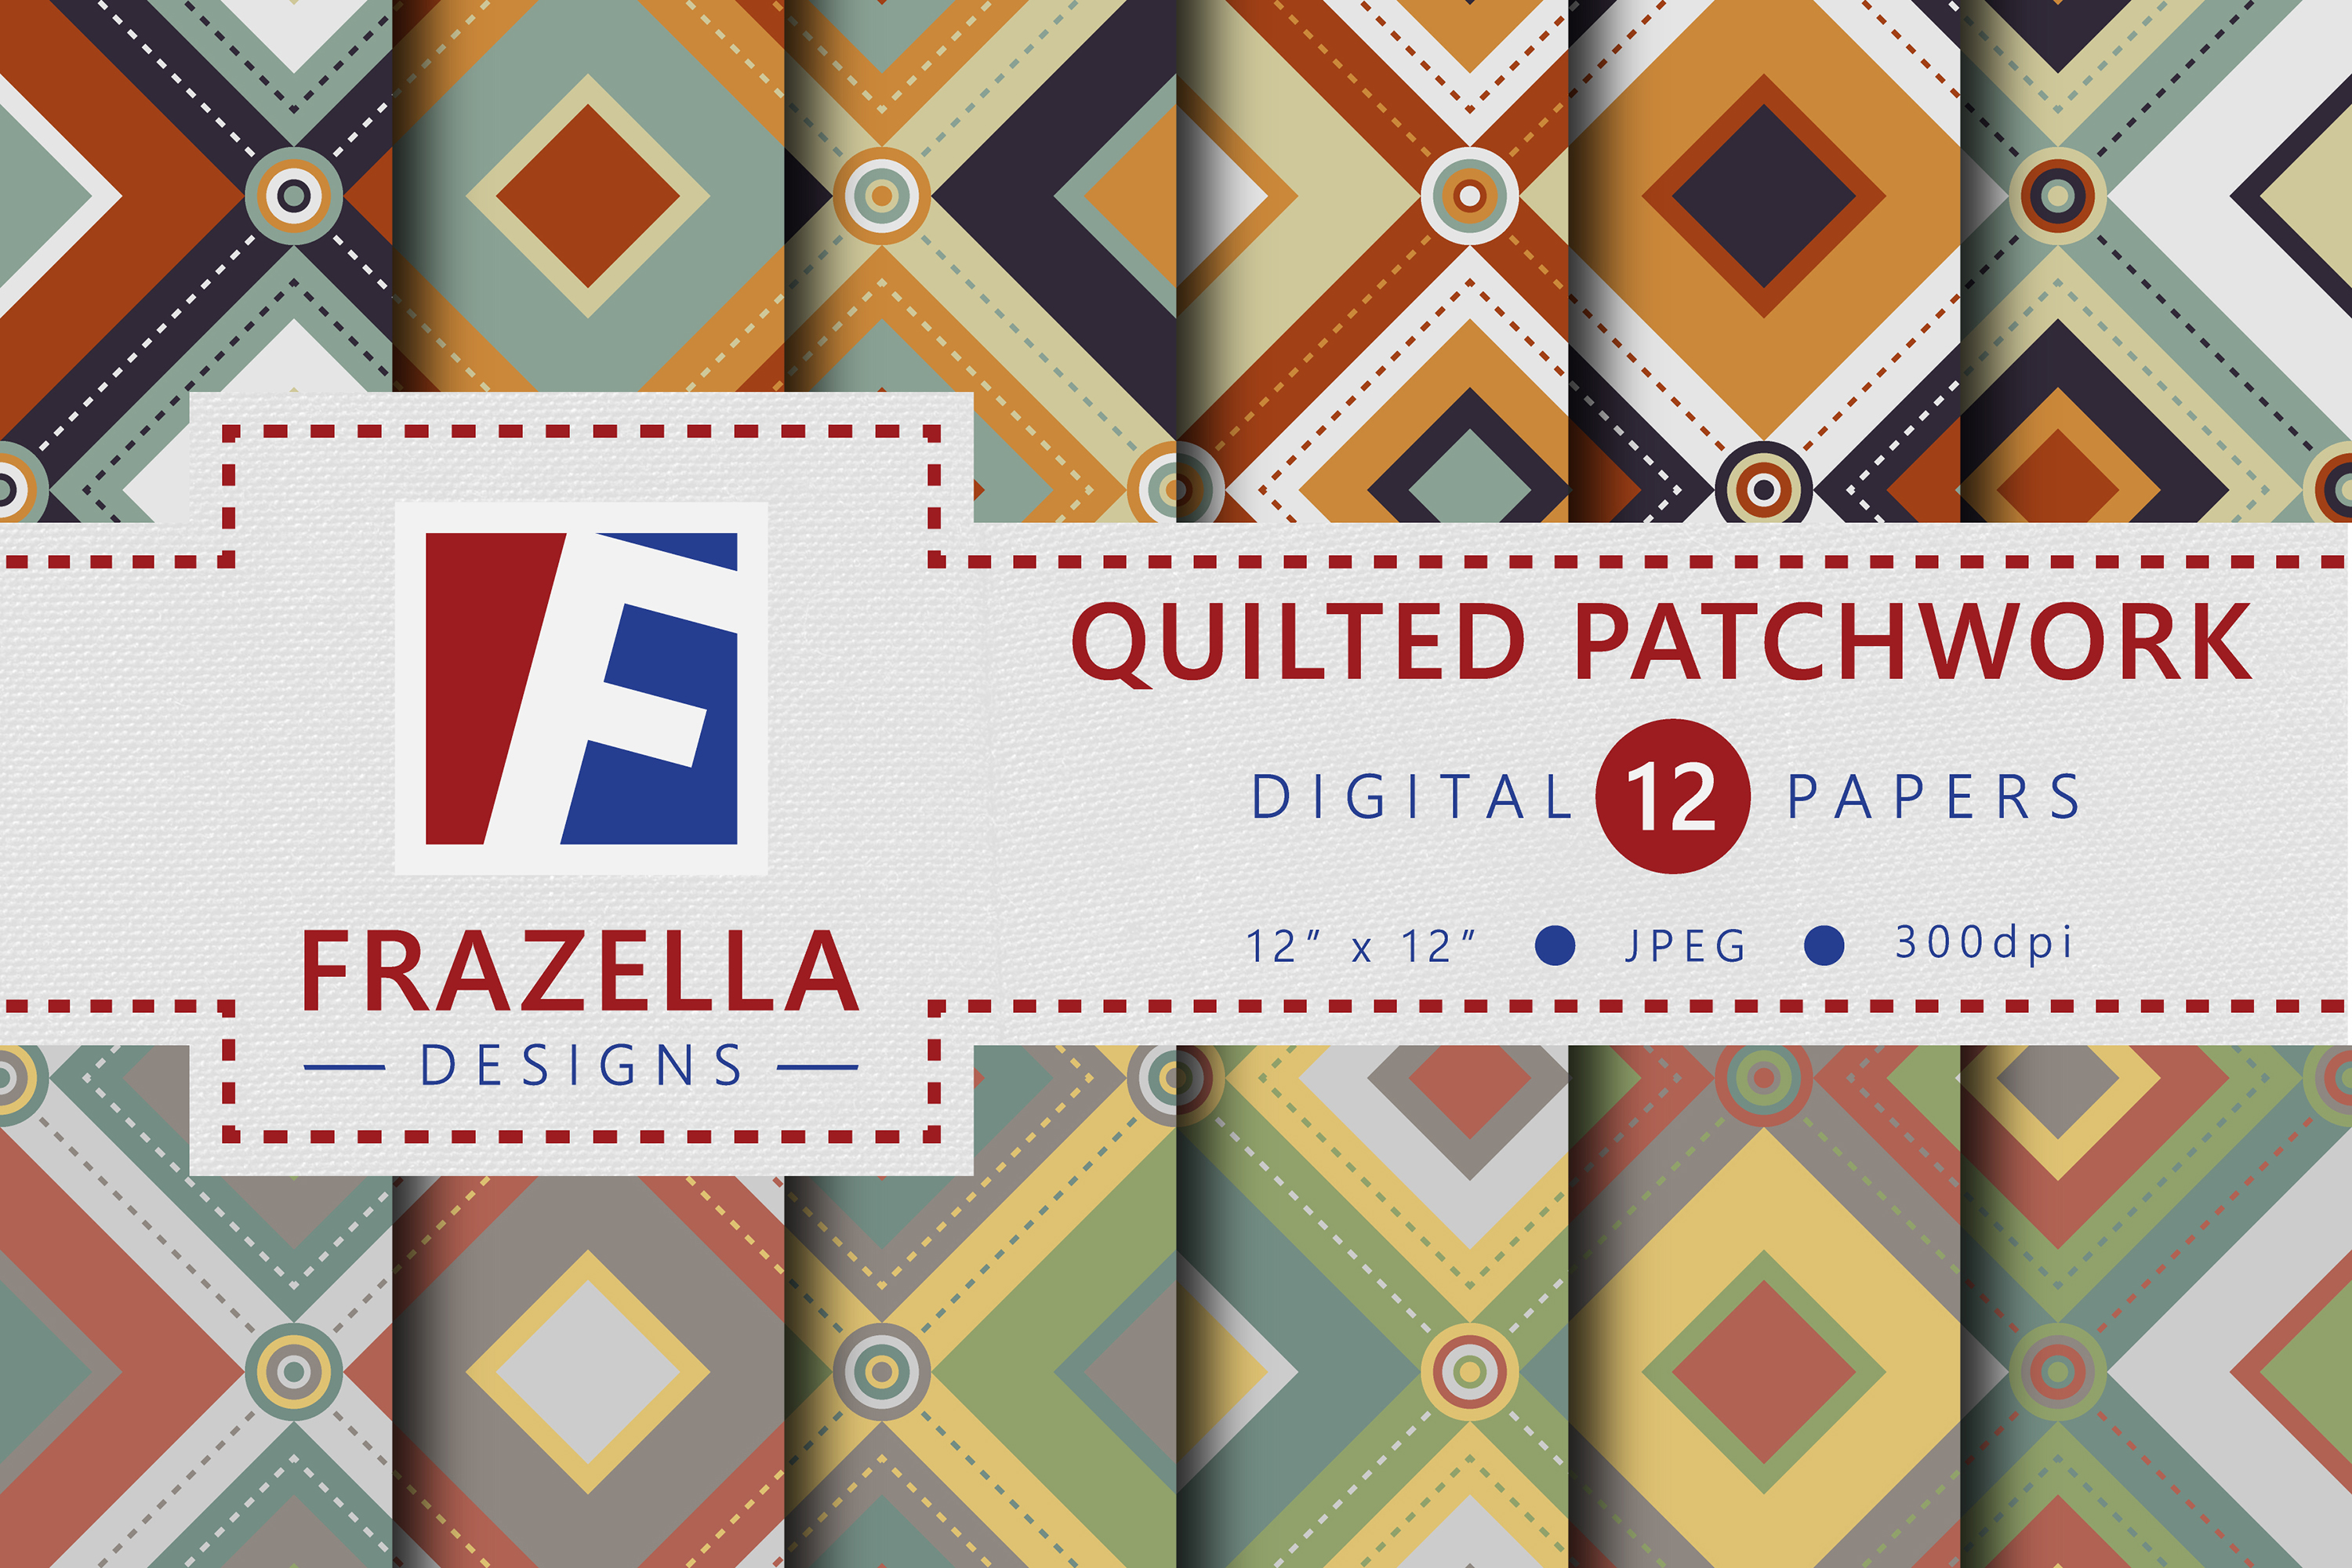 The ULTIMATE Digital Paper Collection Retro Edition Vol. 3. example image 8